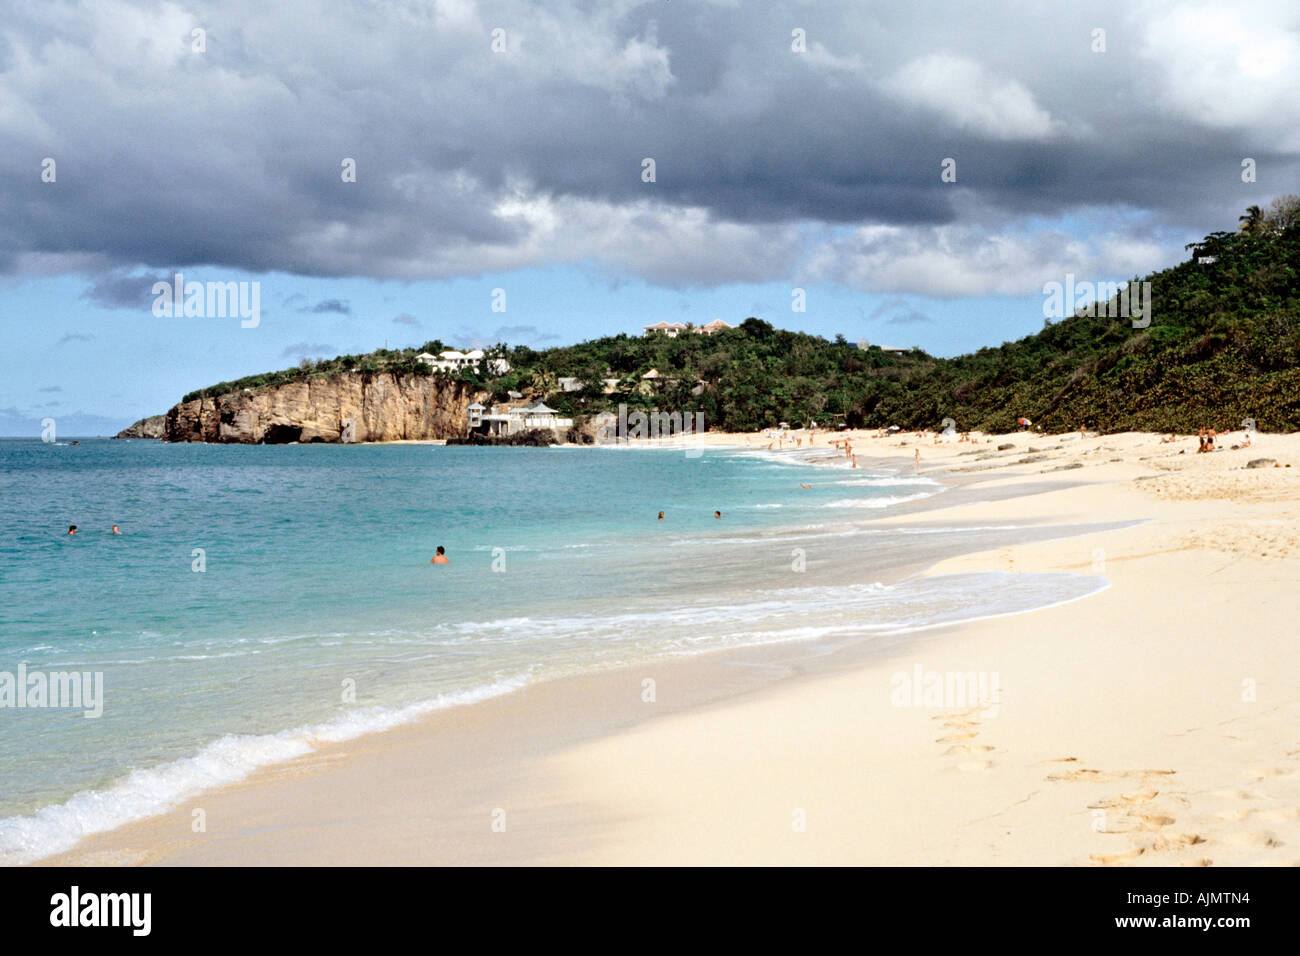 Baie Rouge (Red Bay) on the French island of Saint Martin in the Caribbean. - Stock Image